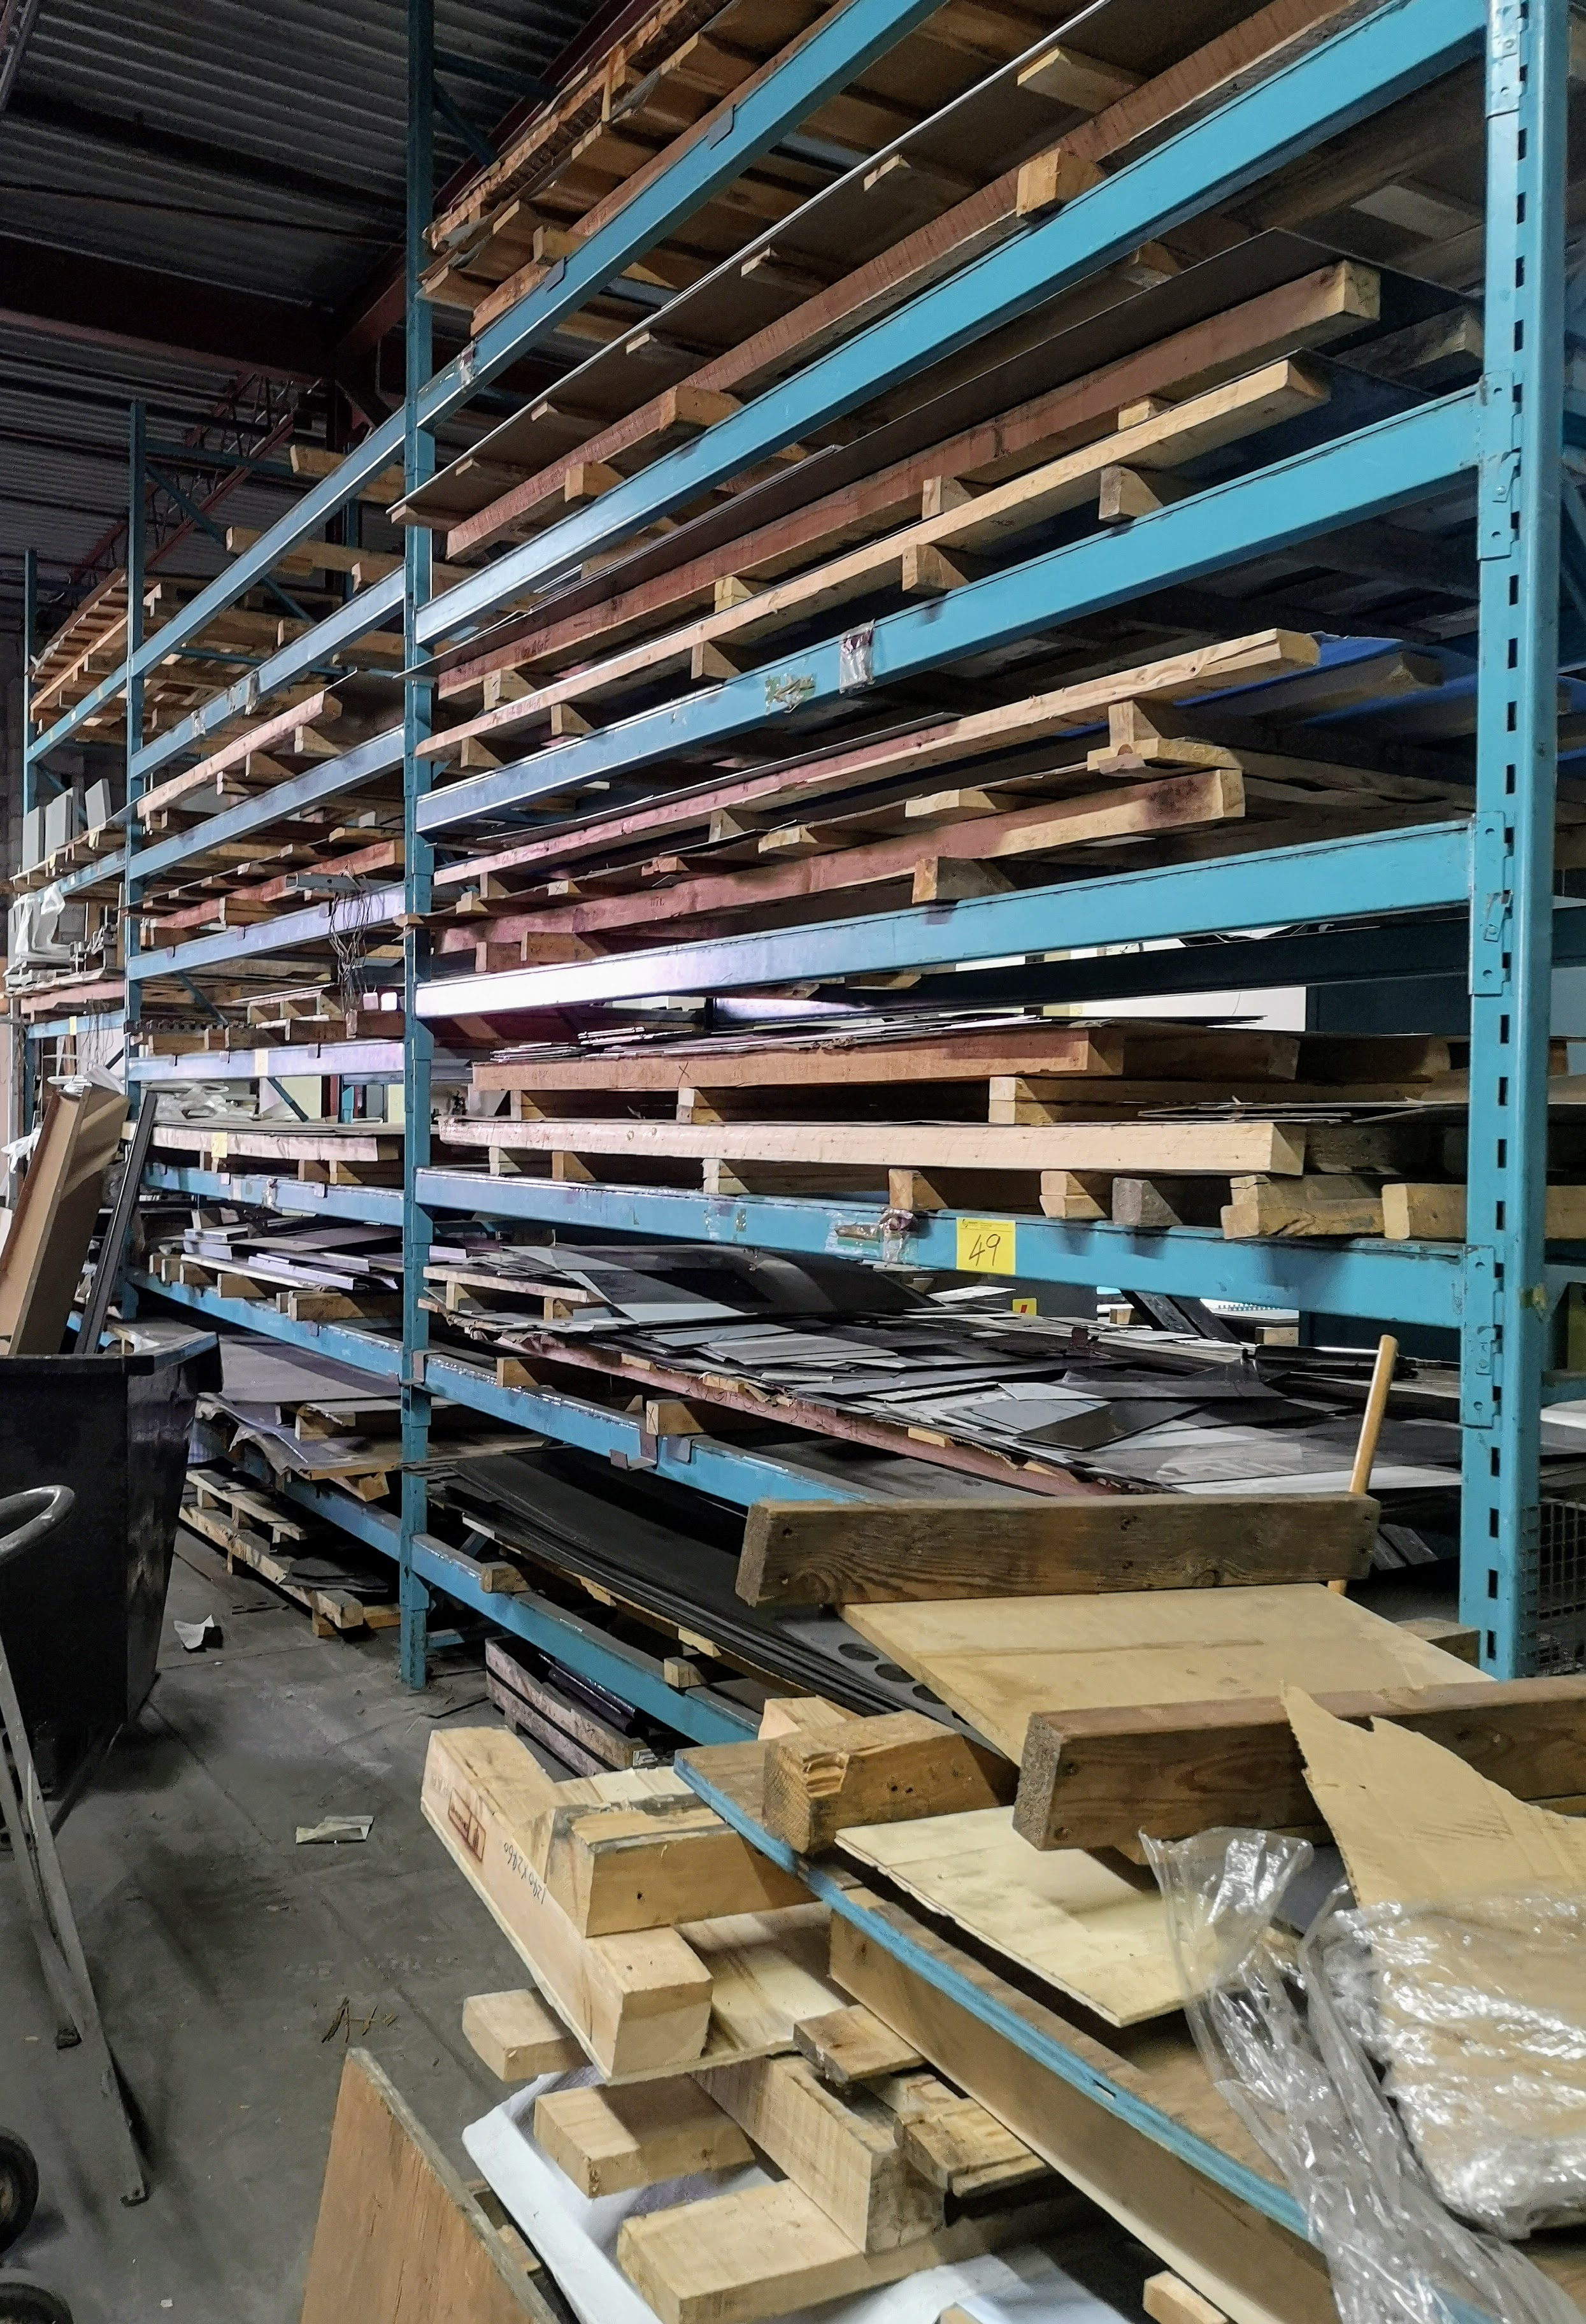 "LOT ASST. PALLET RACKING W/ (6) UPRIGHTS 16' X 42"" W/ (40) CROSSBEAMS 12' X 4"" AND (10) CROSSBEAMS"